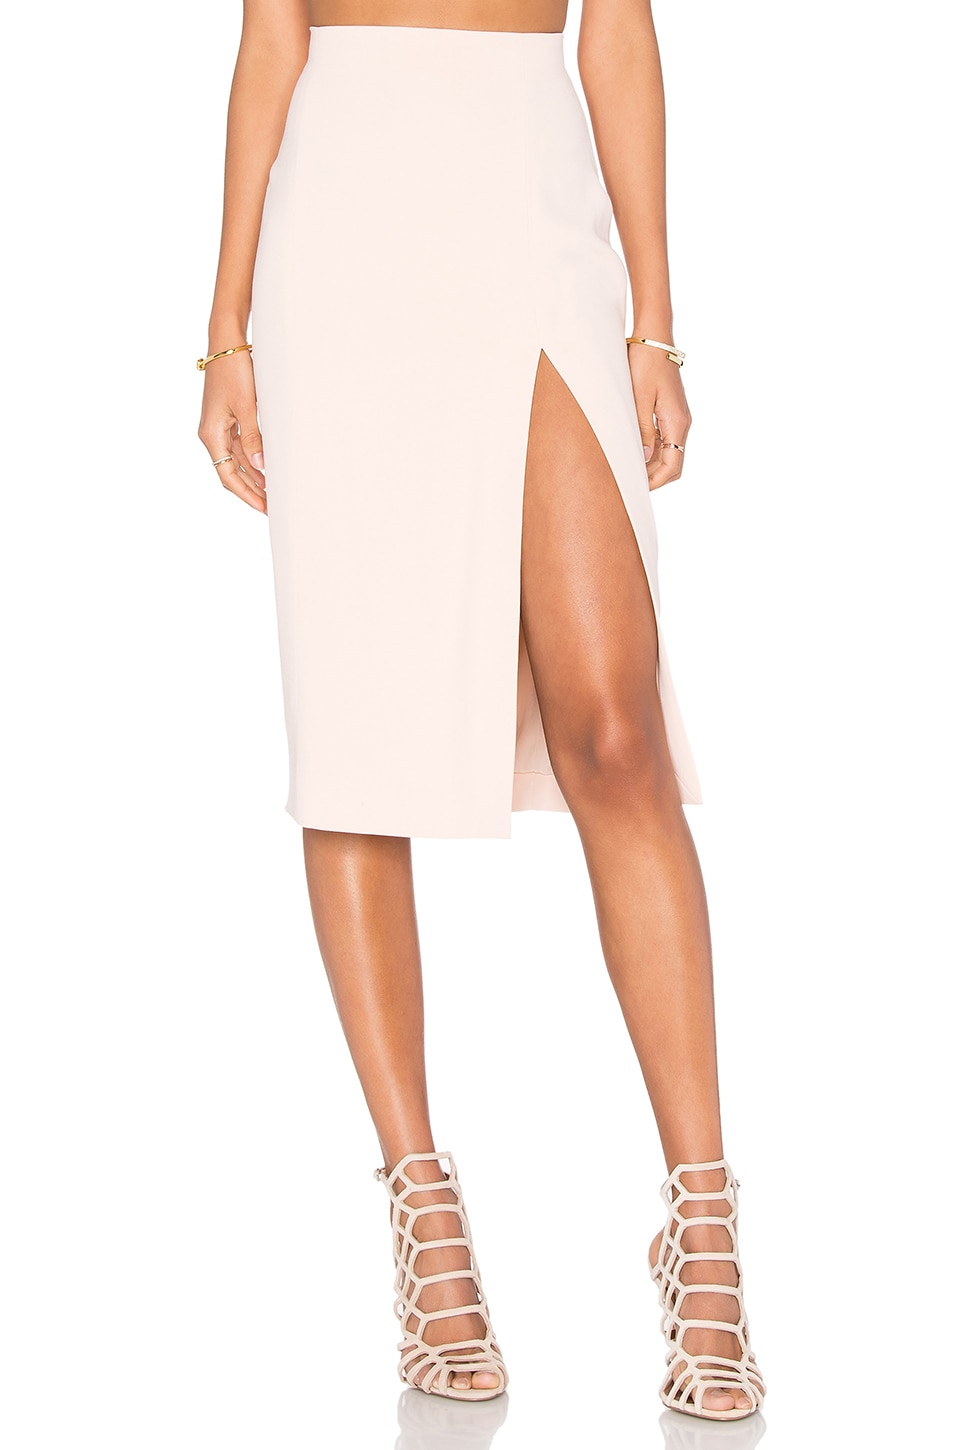 L'AGENCE Yvonne Pencil Skirt in Quartz